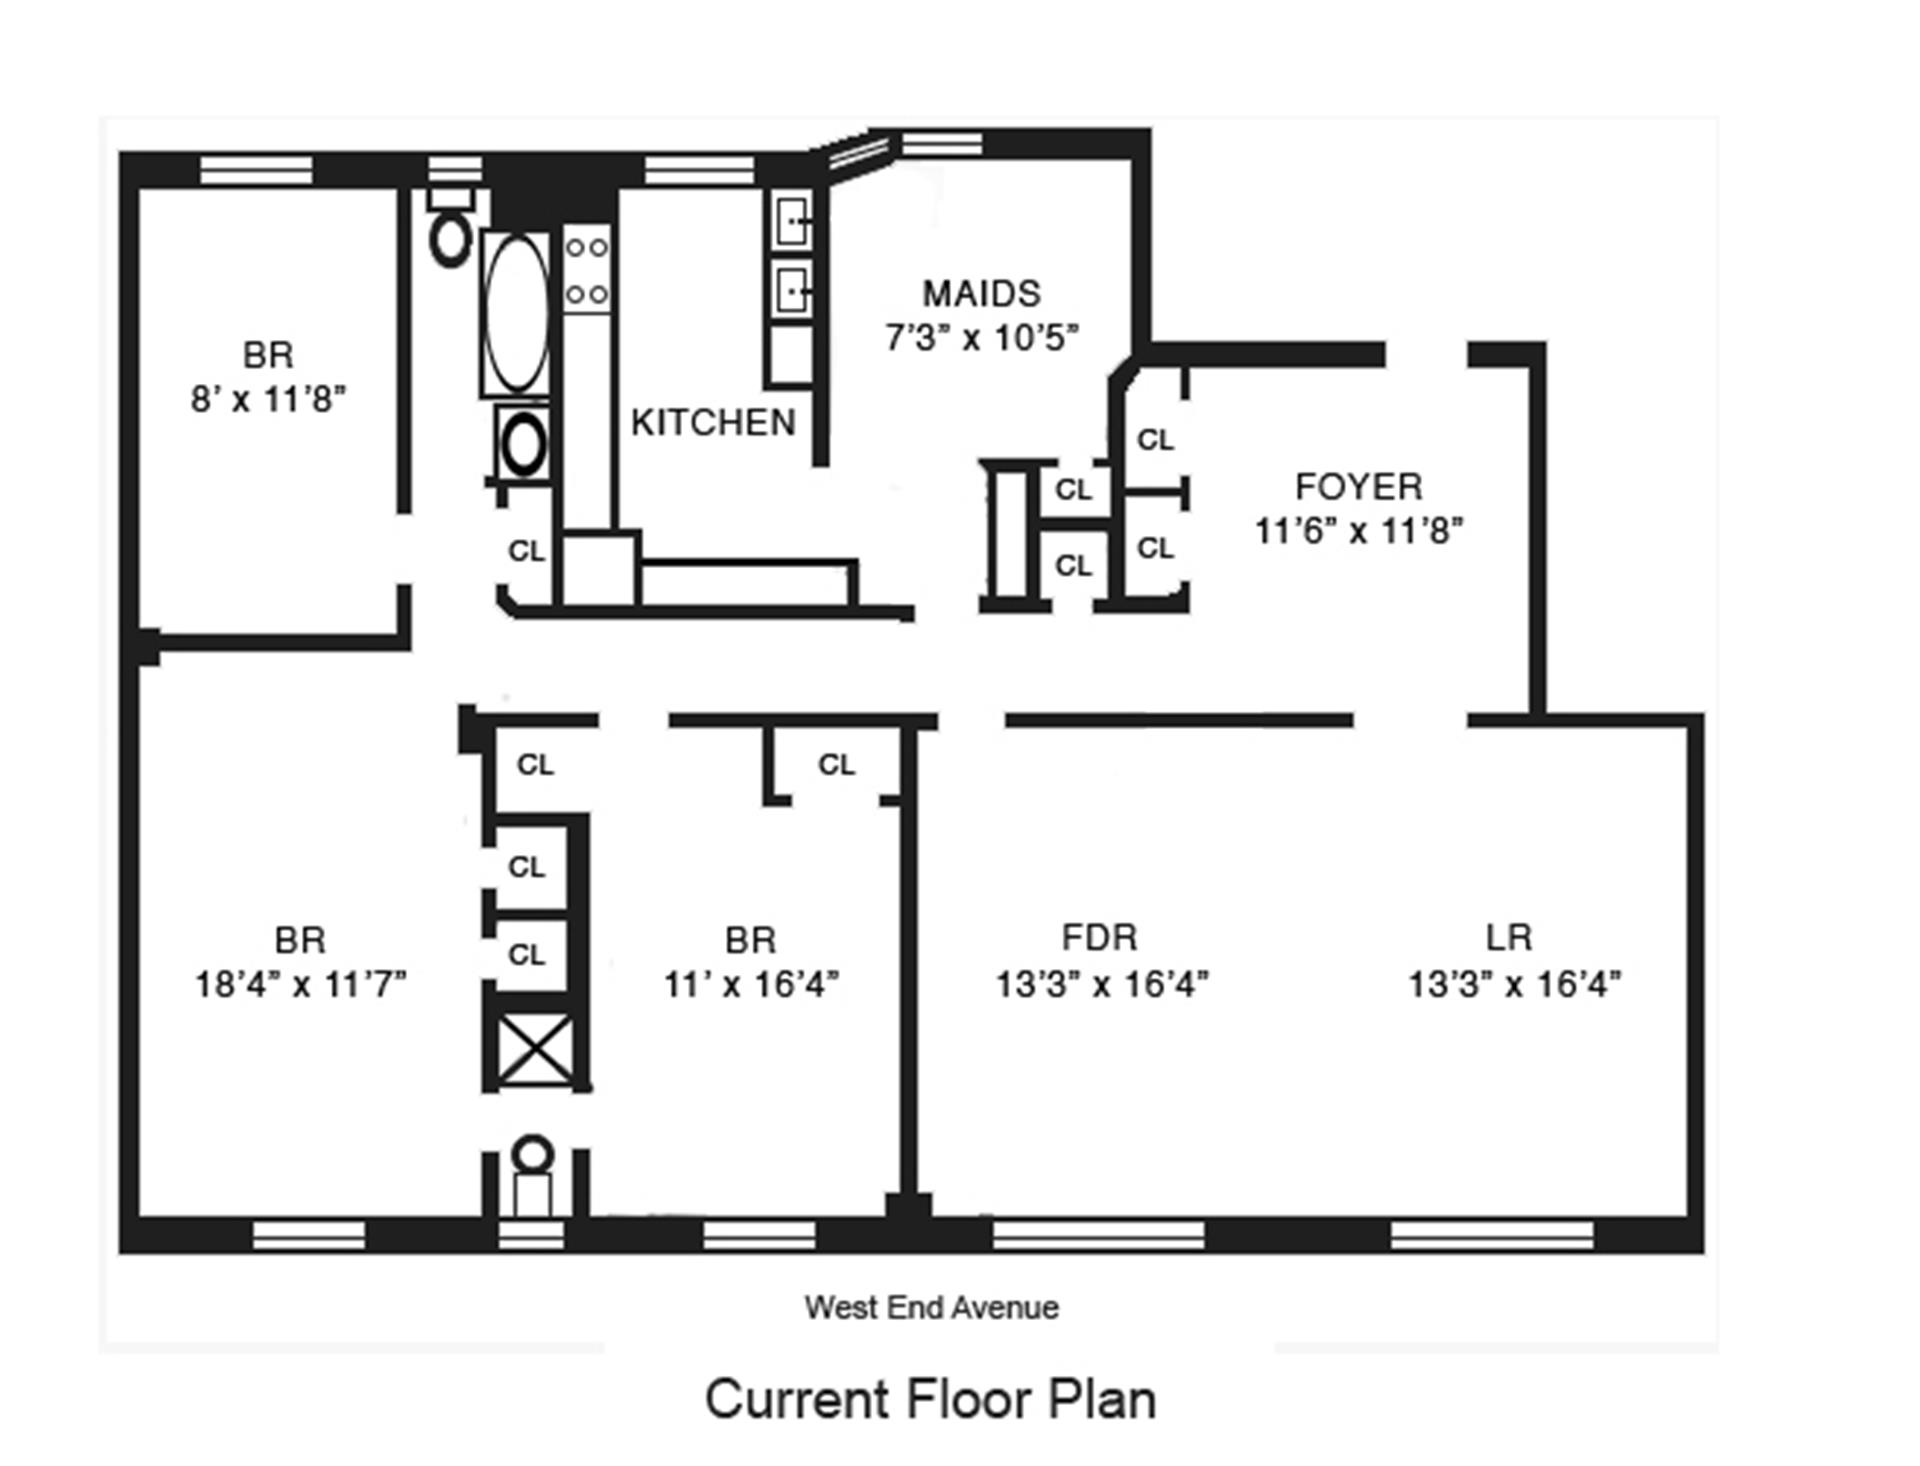 Floor plan of 490 West End Owners Corp., 490 West End Avenue, 4B - Upper West Side, New York